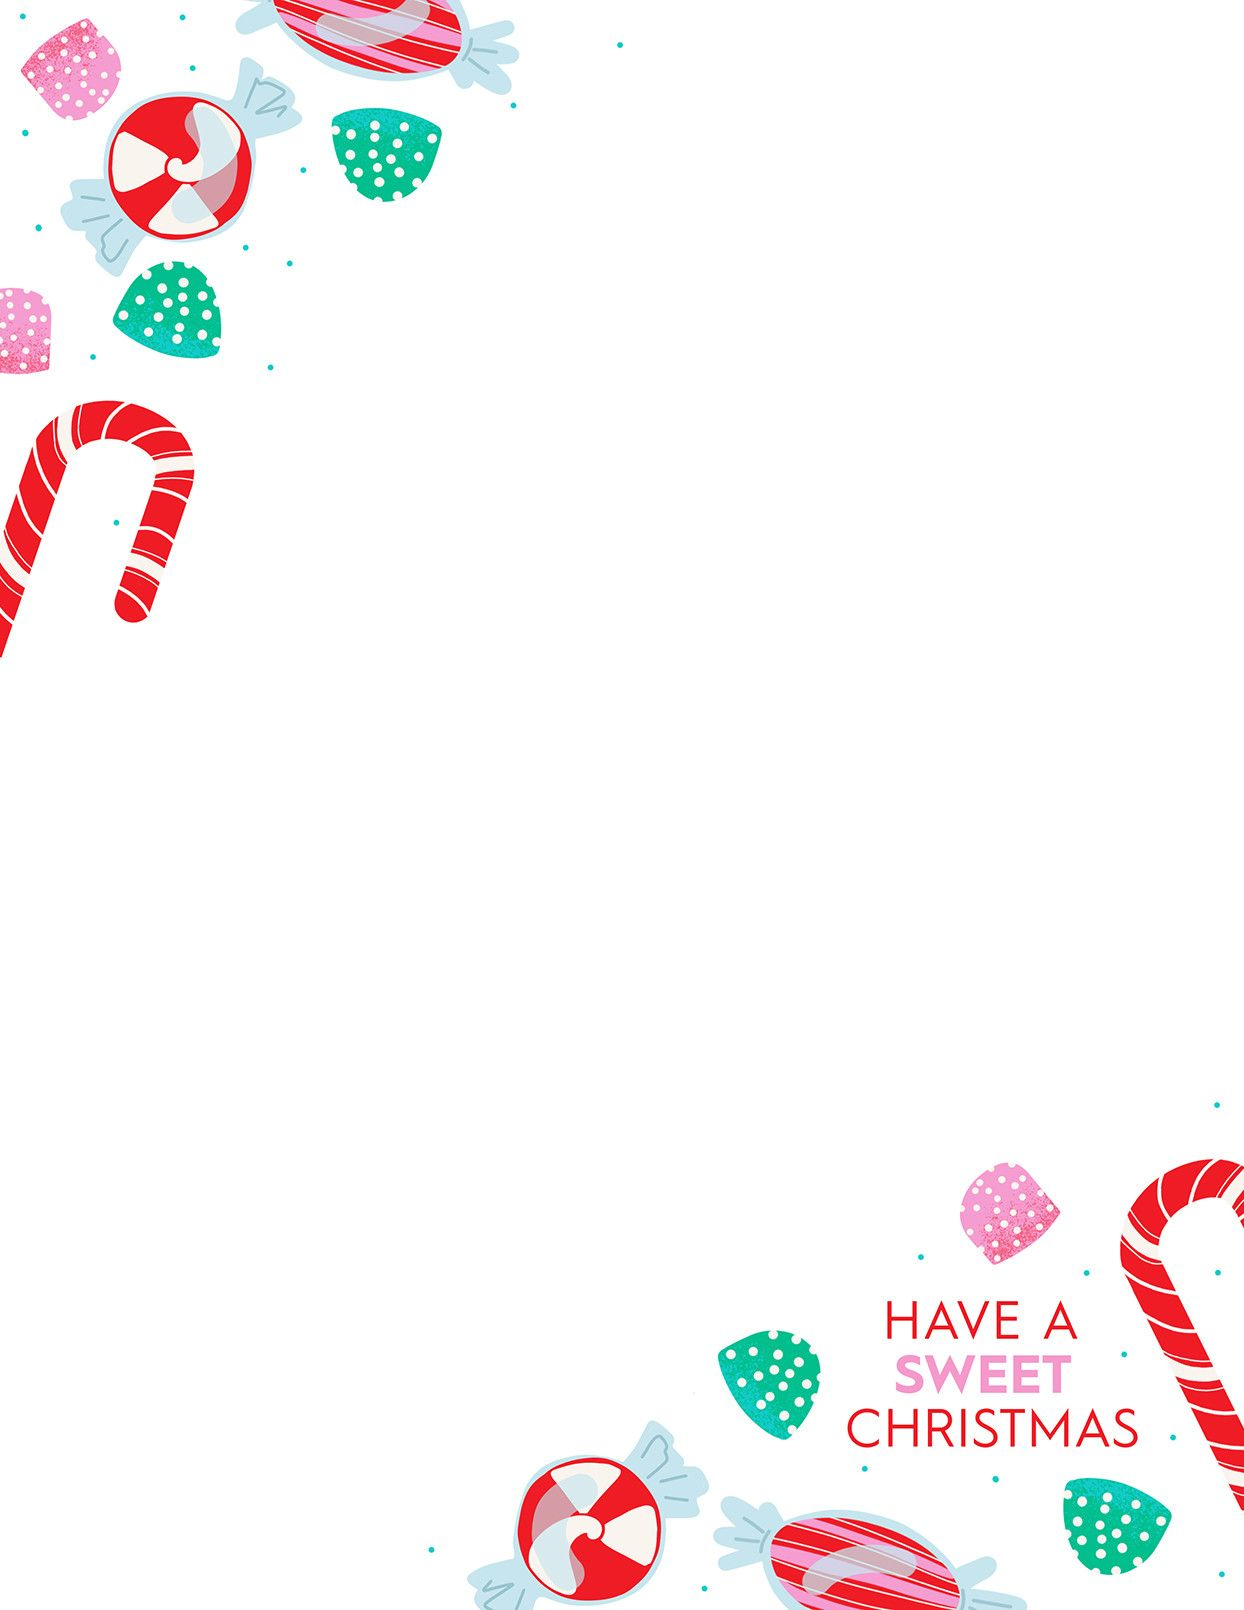 Christmas Letter Ideas Templates Christmas Letter Template Christmas Note Cards Christmas Letter Template Free